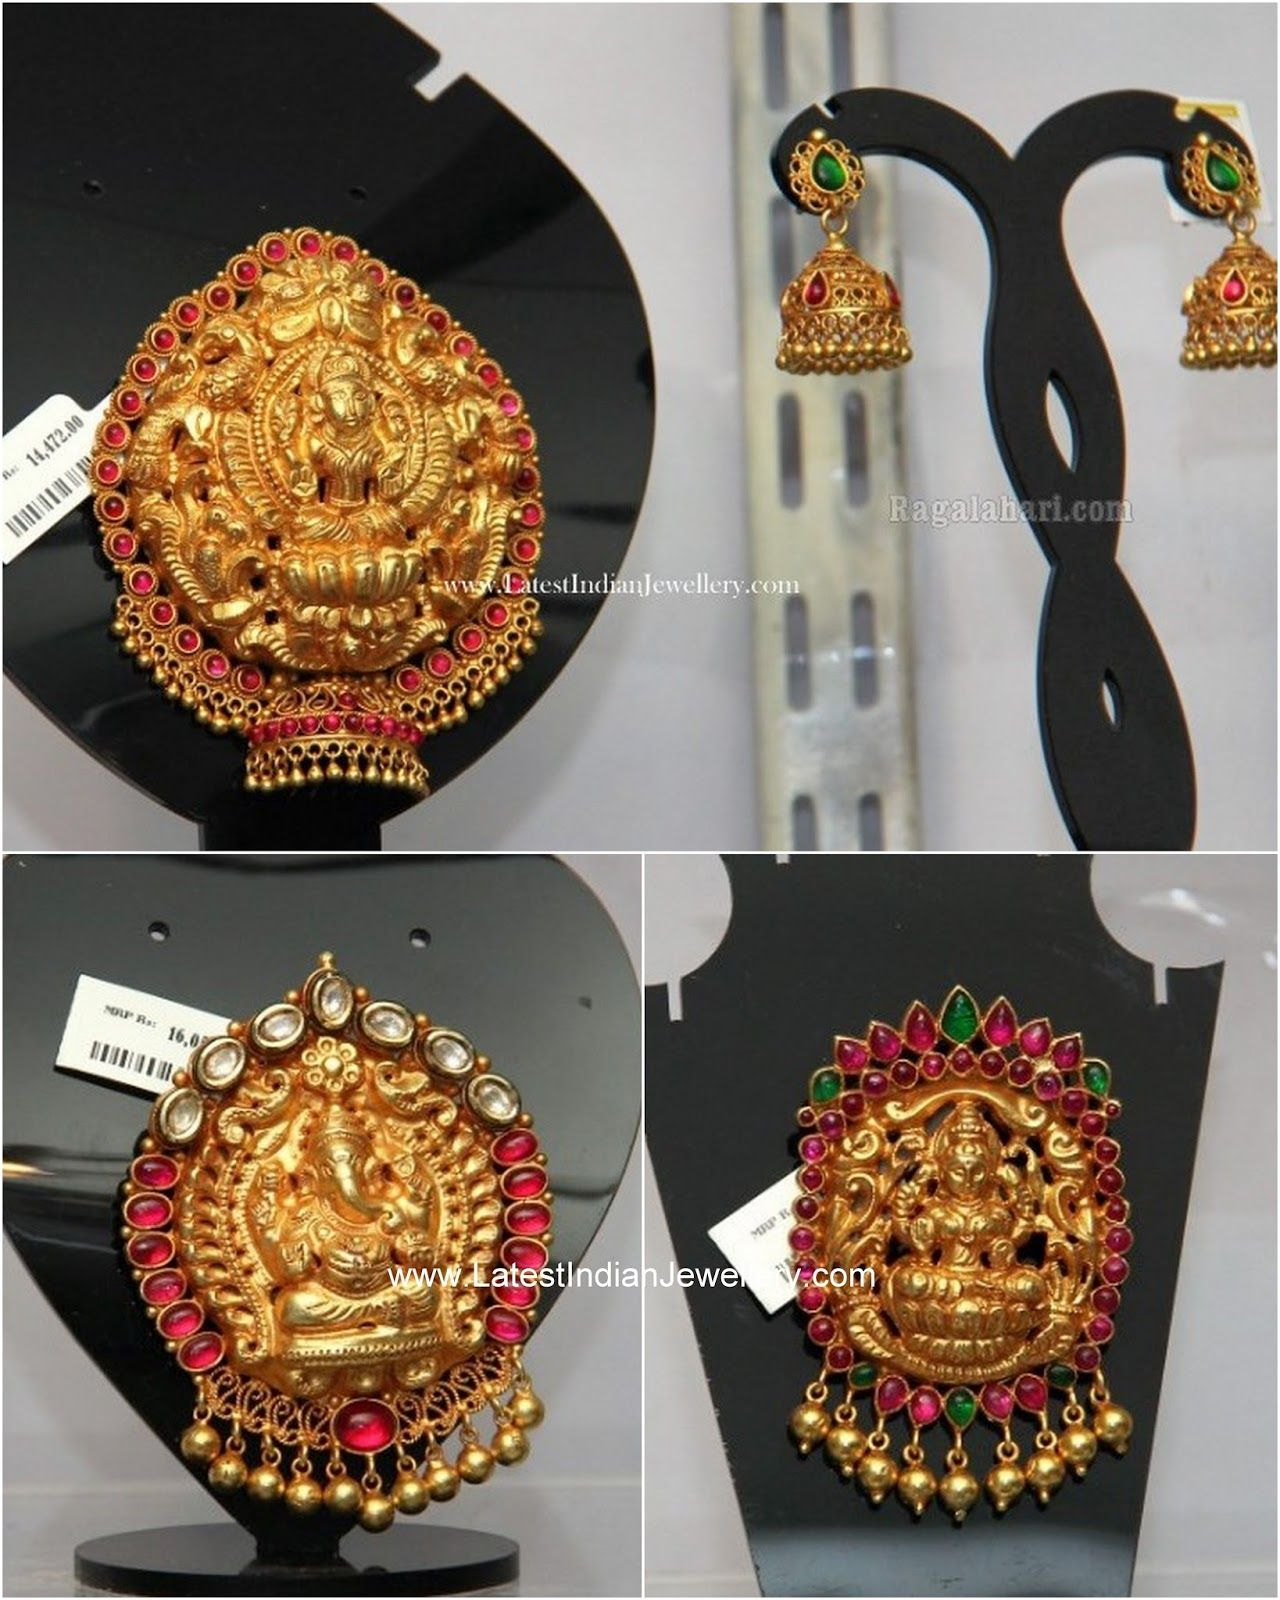 Temple jewellery gold and ruby pendants temple pendants and ruby temple jewellery gold and ruby pendants mozeypictures Choice Image